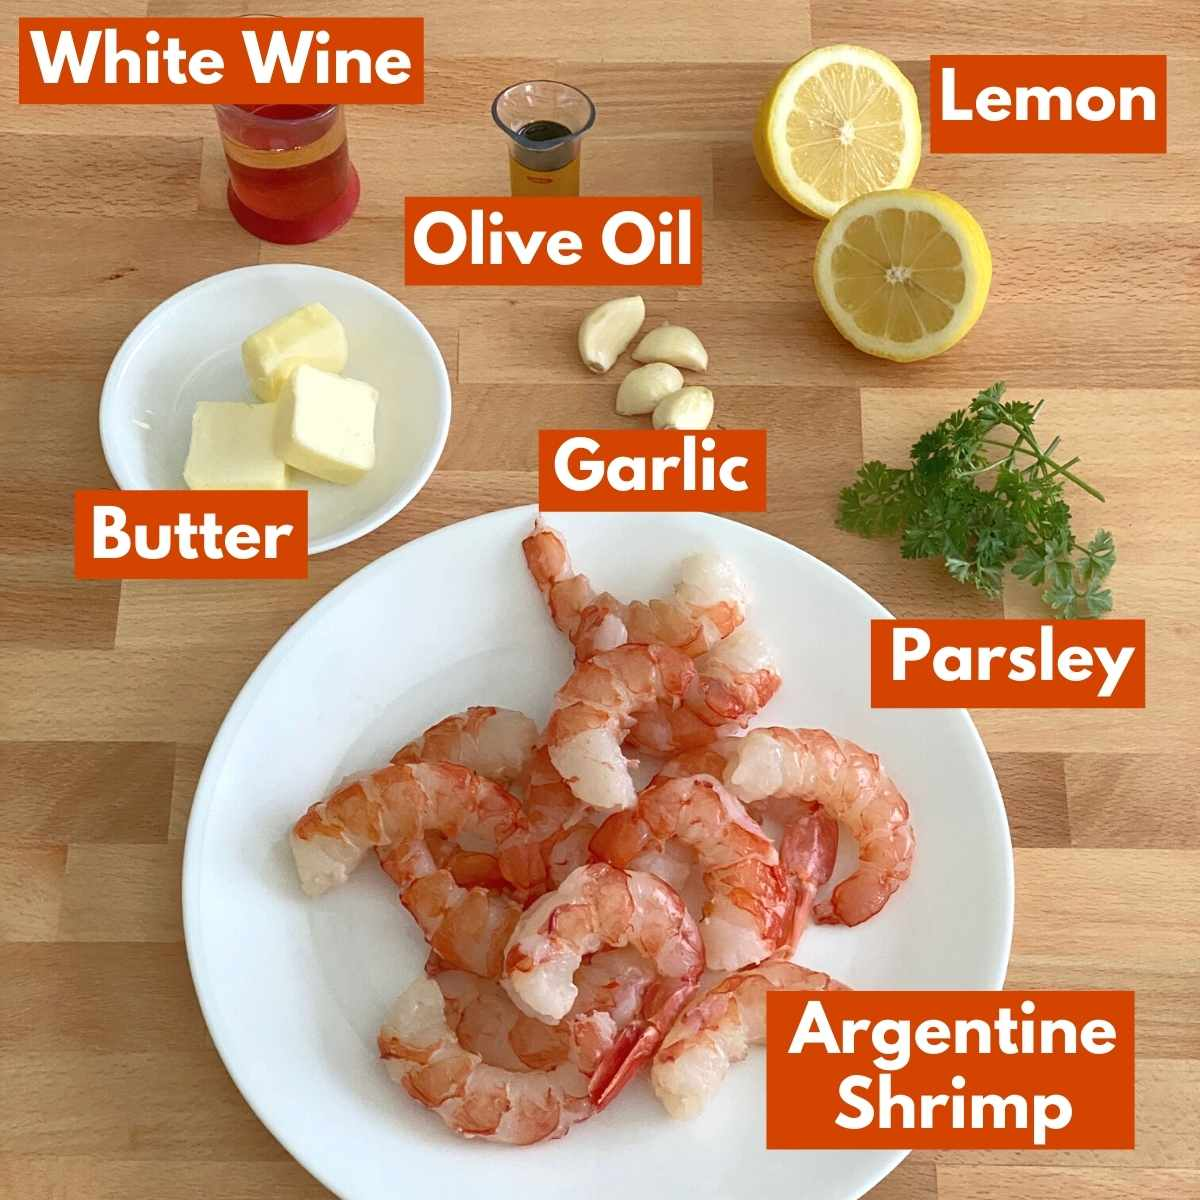 Picture with labeled ingredients to make the recipe.